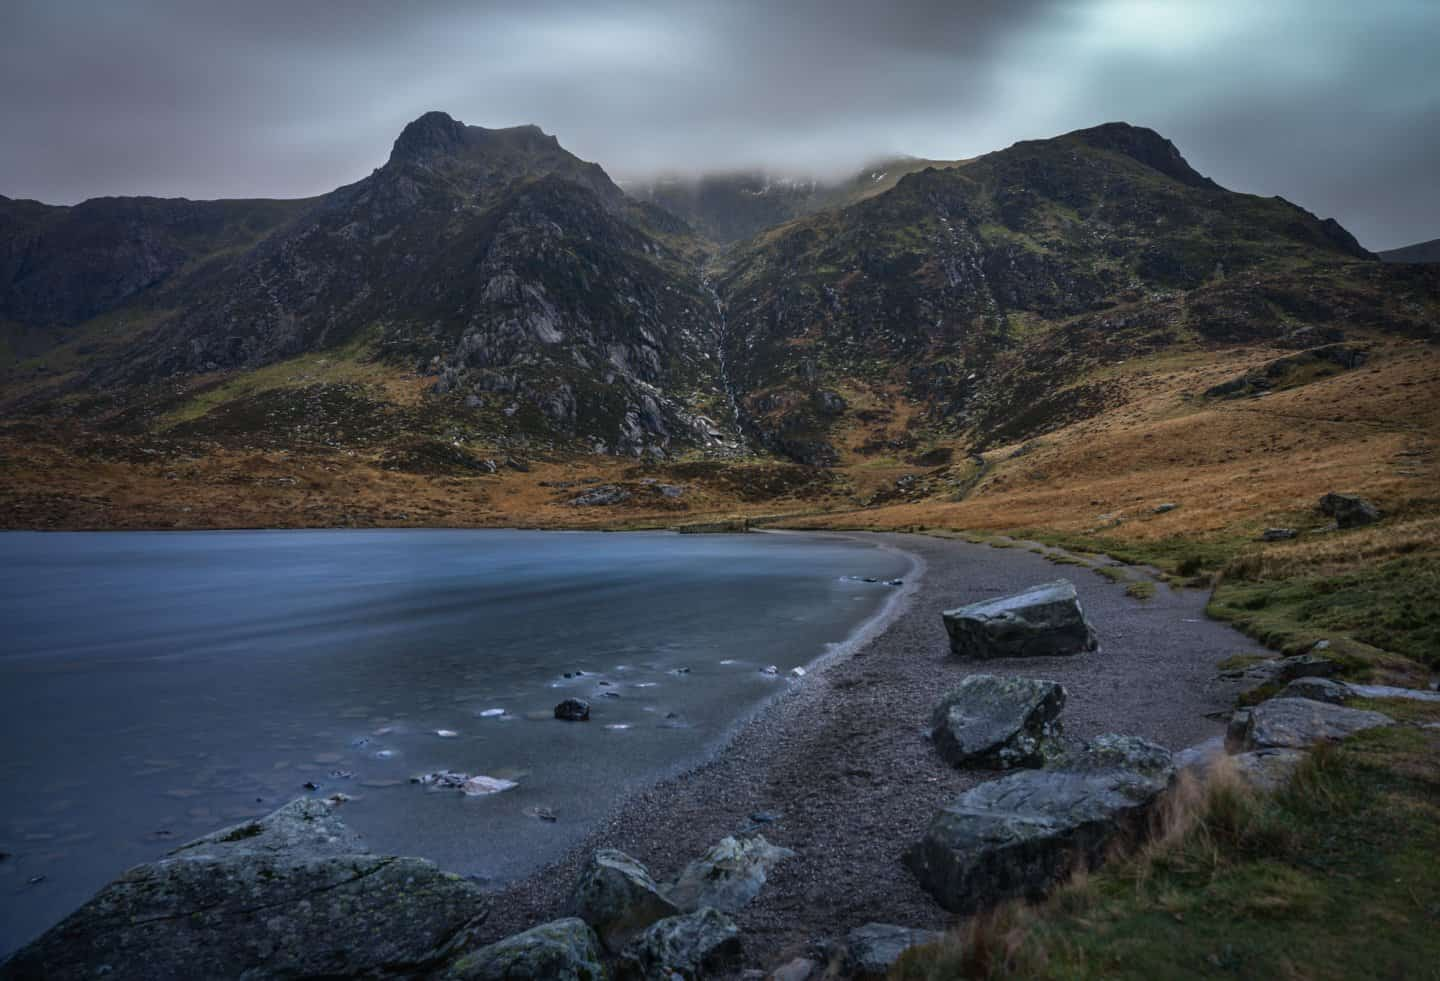 Llyn Idwal is one of the cannot miss Snowdonia photography locations.